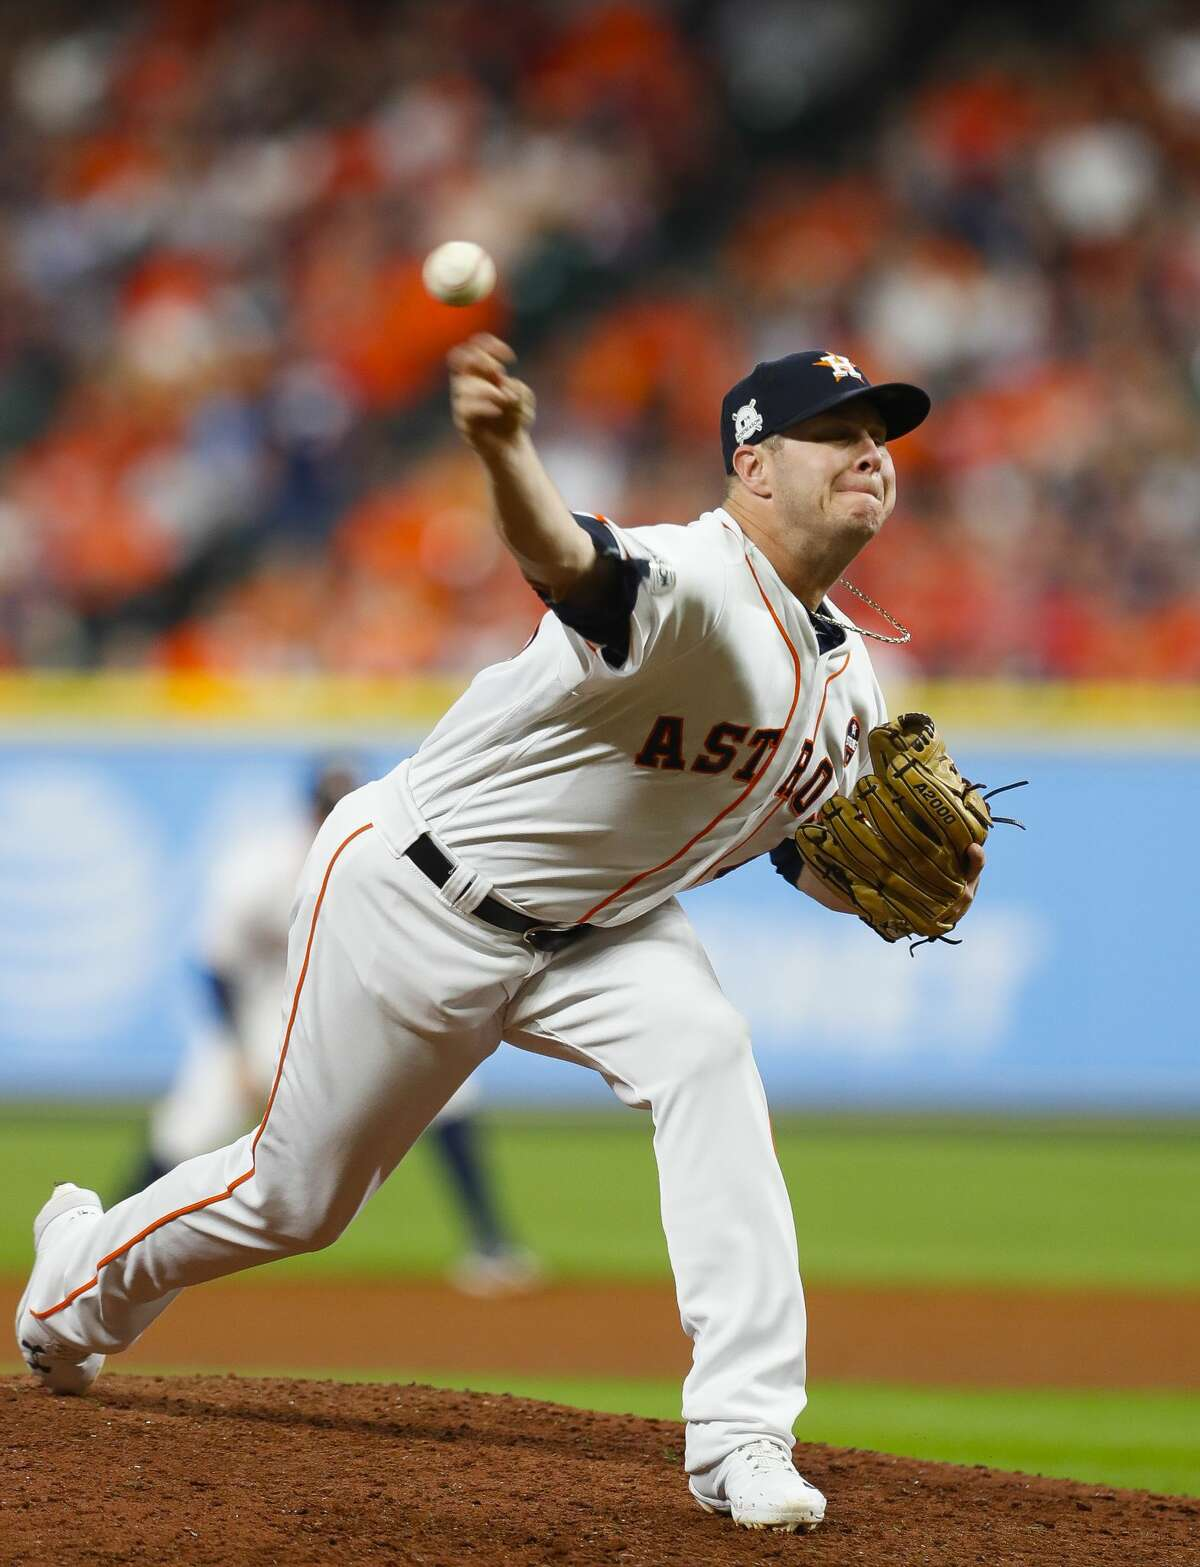 Houston Astros starting pitcher Brad Peacock (41) pitches during the eighth inning of Game 6 of the ALCS at Minute Maid Park on Friday, Oct. 20, 2017, in Houston. ( Brett Coomer / Houston Chronicle )